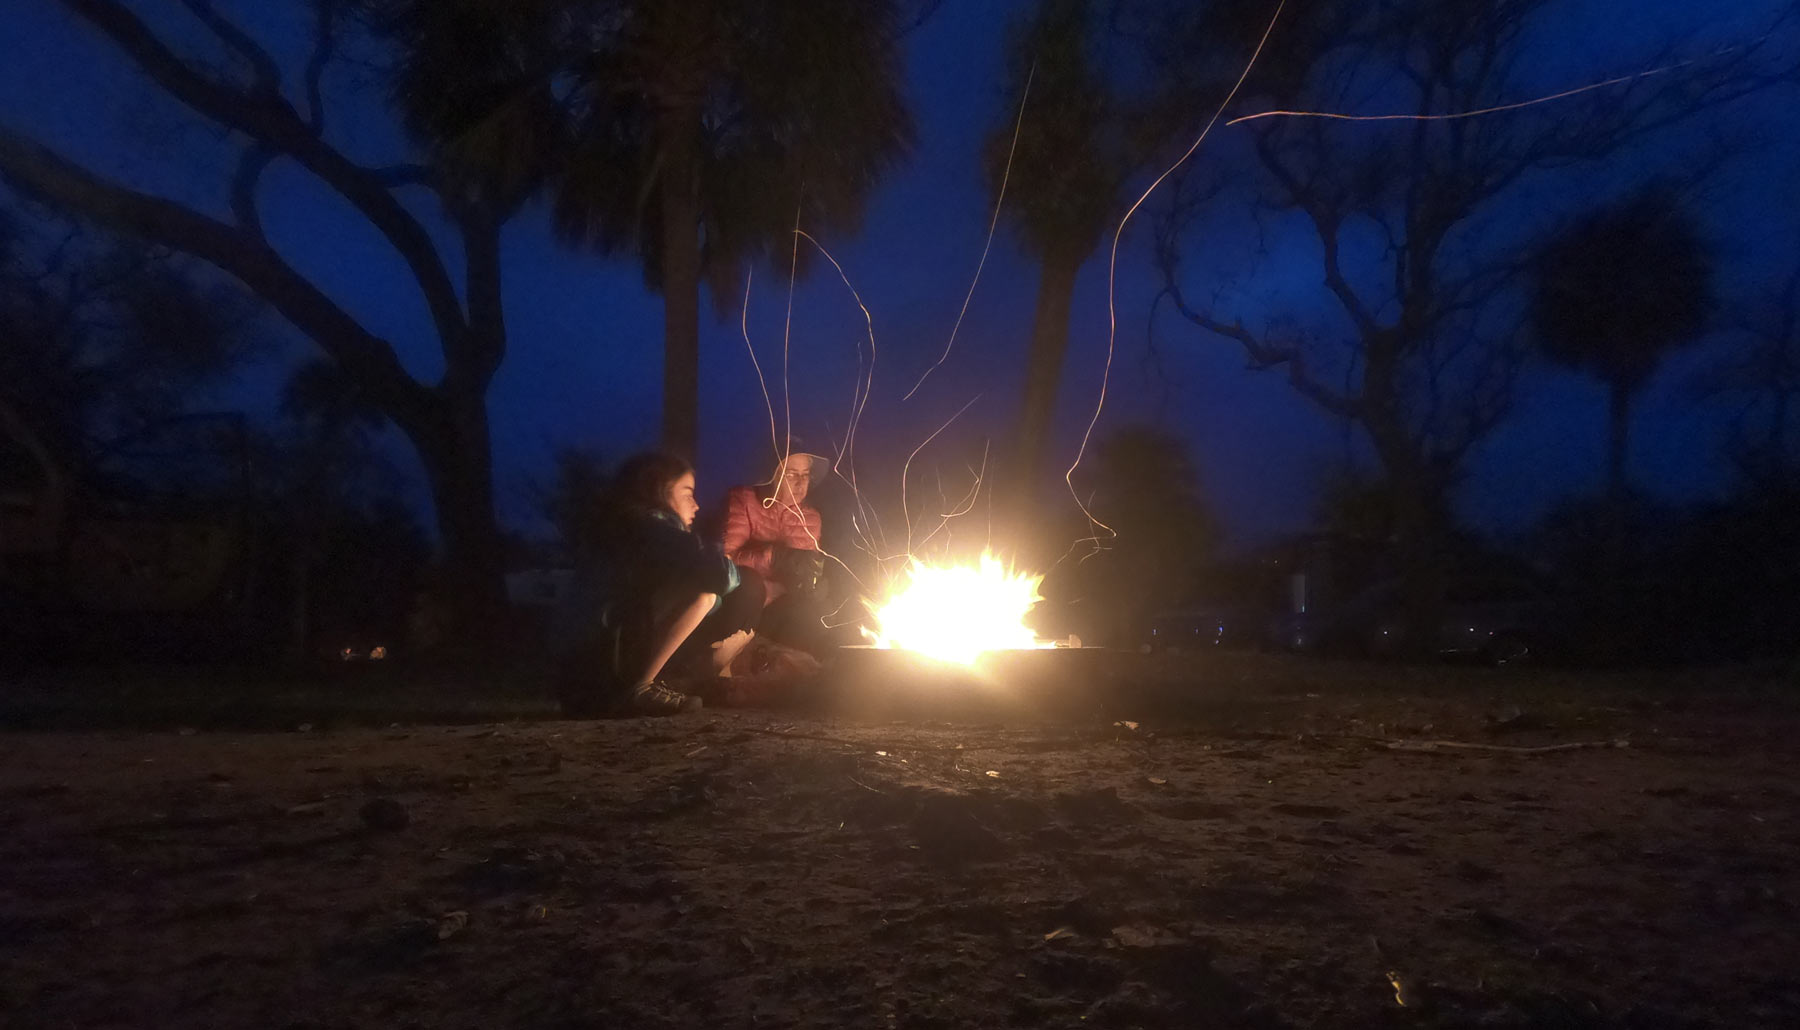 Family gathered around glowing campfire at night at Hunting Island State Park, South Carolina